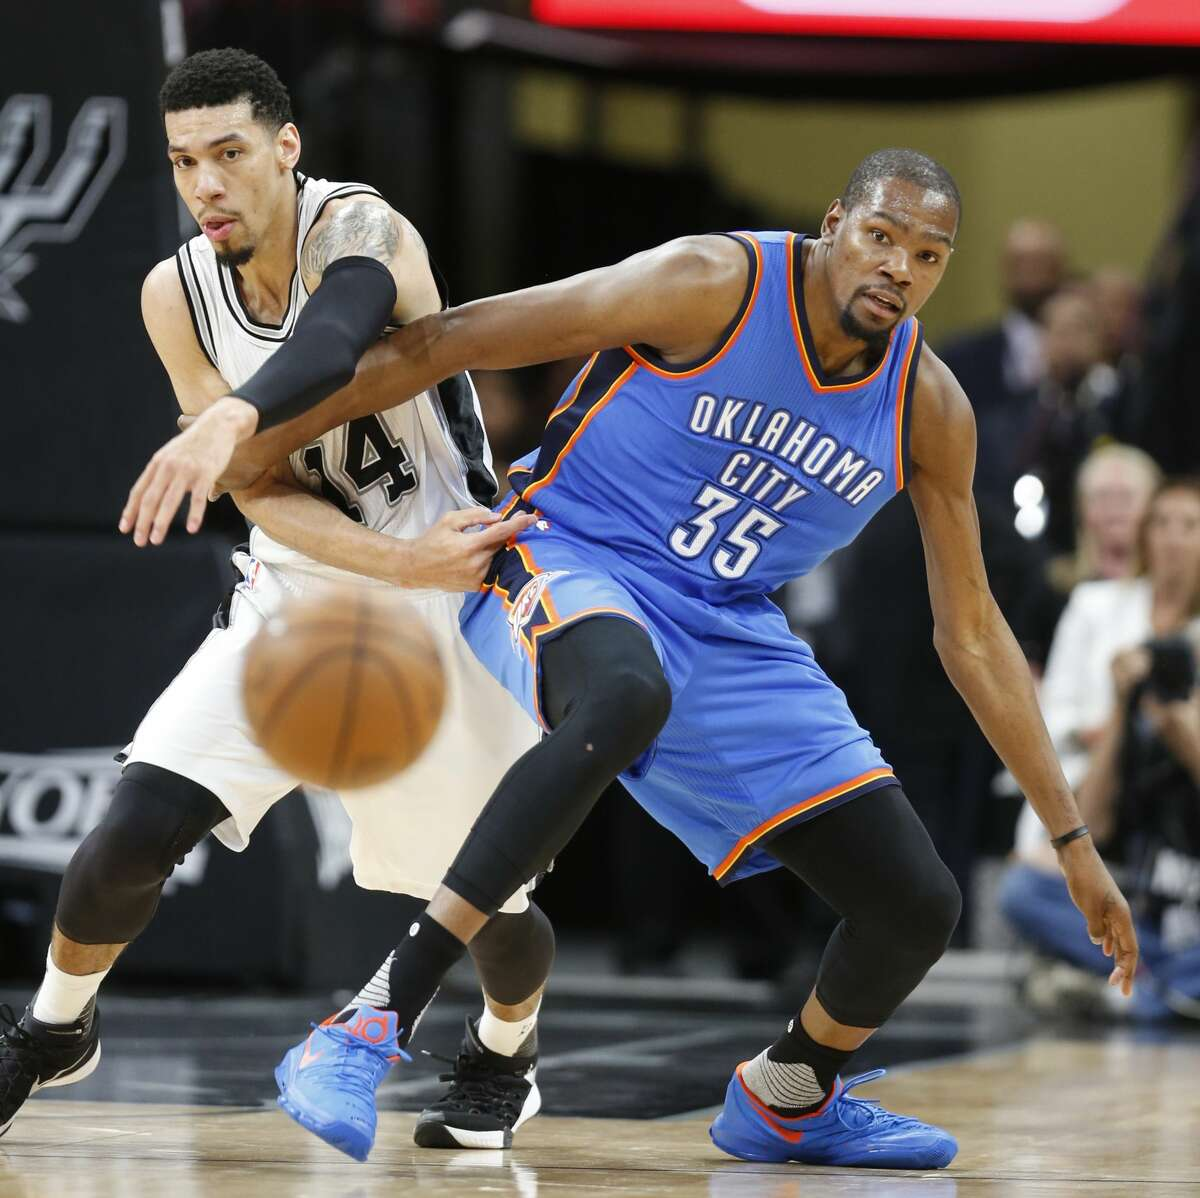 SAN ANTONIO,TX - MAY 2: Danny Green #14 of the San Antonio Spurs tries to steal the ball from Kevin Durant #35 of the Oklahoma City Thunder during game Two of the Western Conference Semifinals for the 2016 NBA Playoffs at AT&T Center on May 2, 2016 in San Antonio, Texas. NOTE TO USER: User expressly acknowledges and agrees that , by downloading and or using this photograph, User is consenting to the terms and conditions of the Getty Images License Agreement. (Photo by Ronald Cortes/Getty Images)